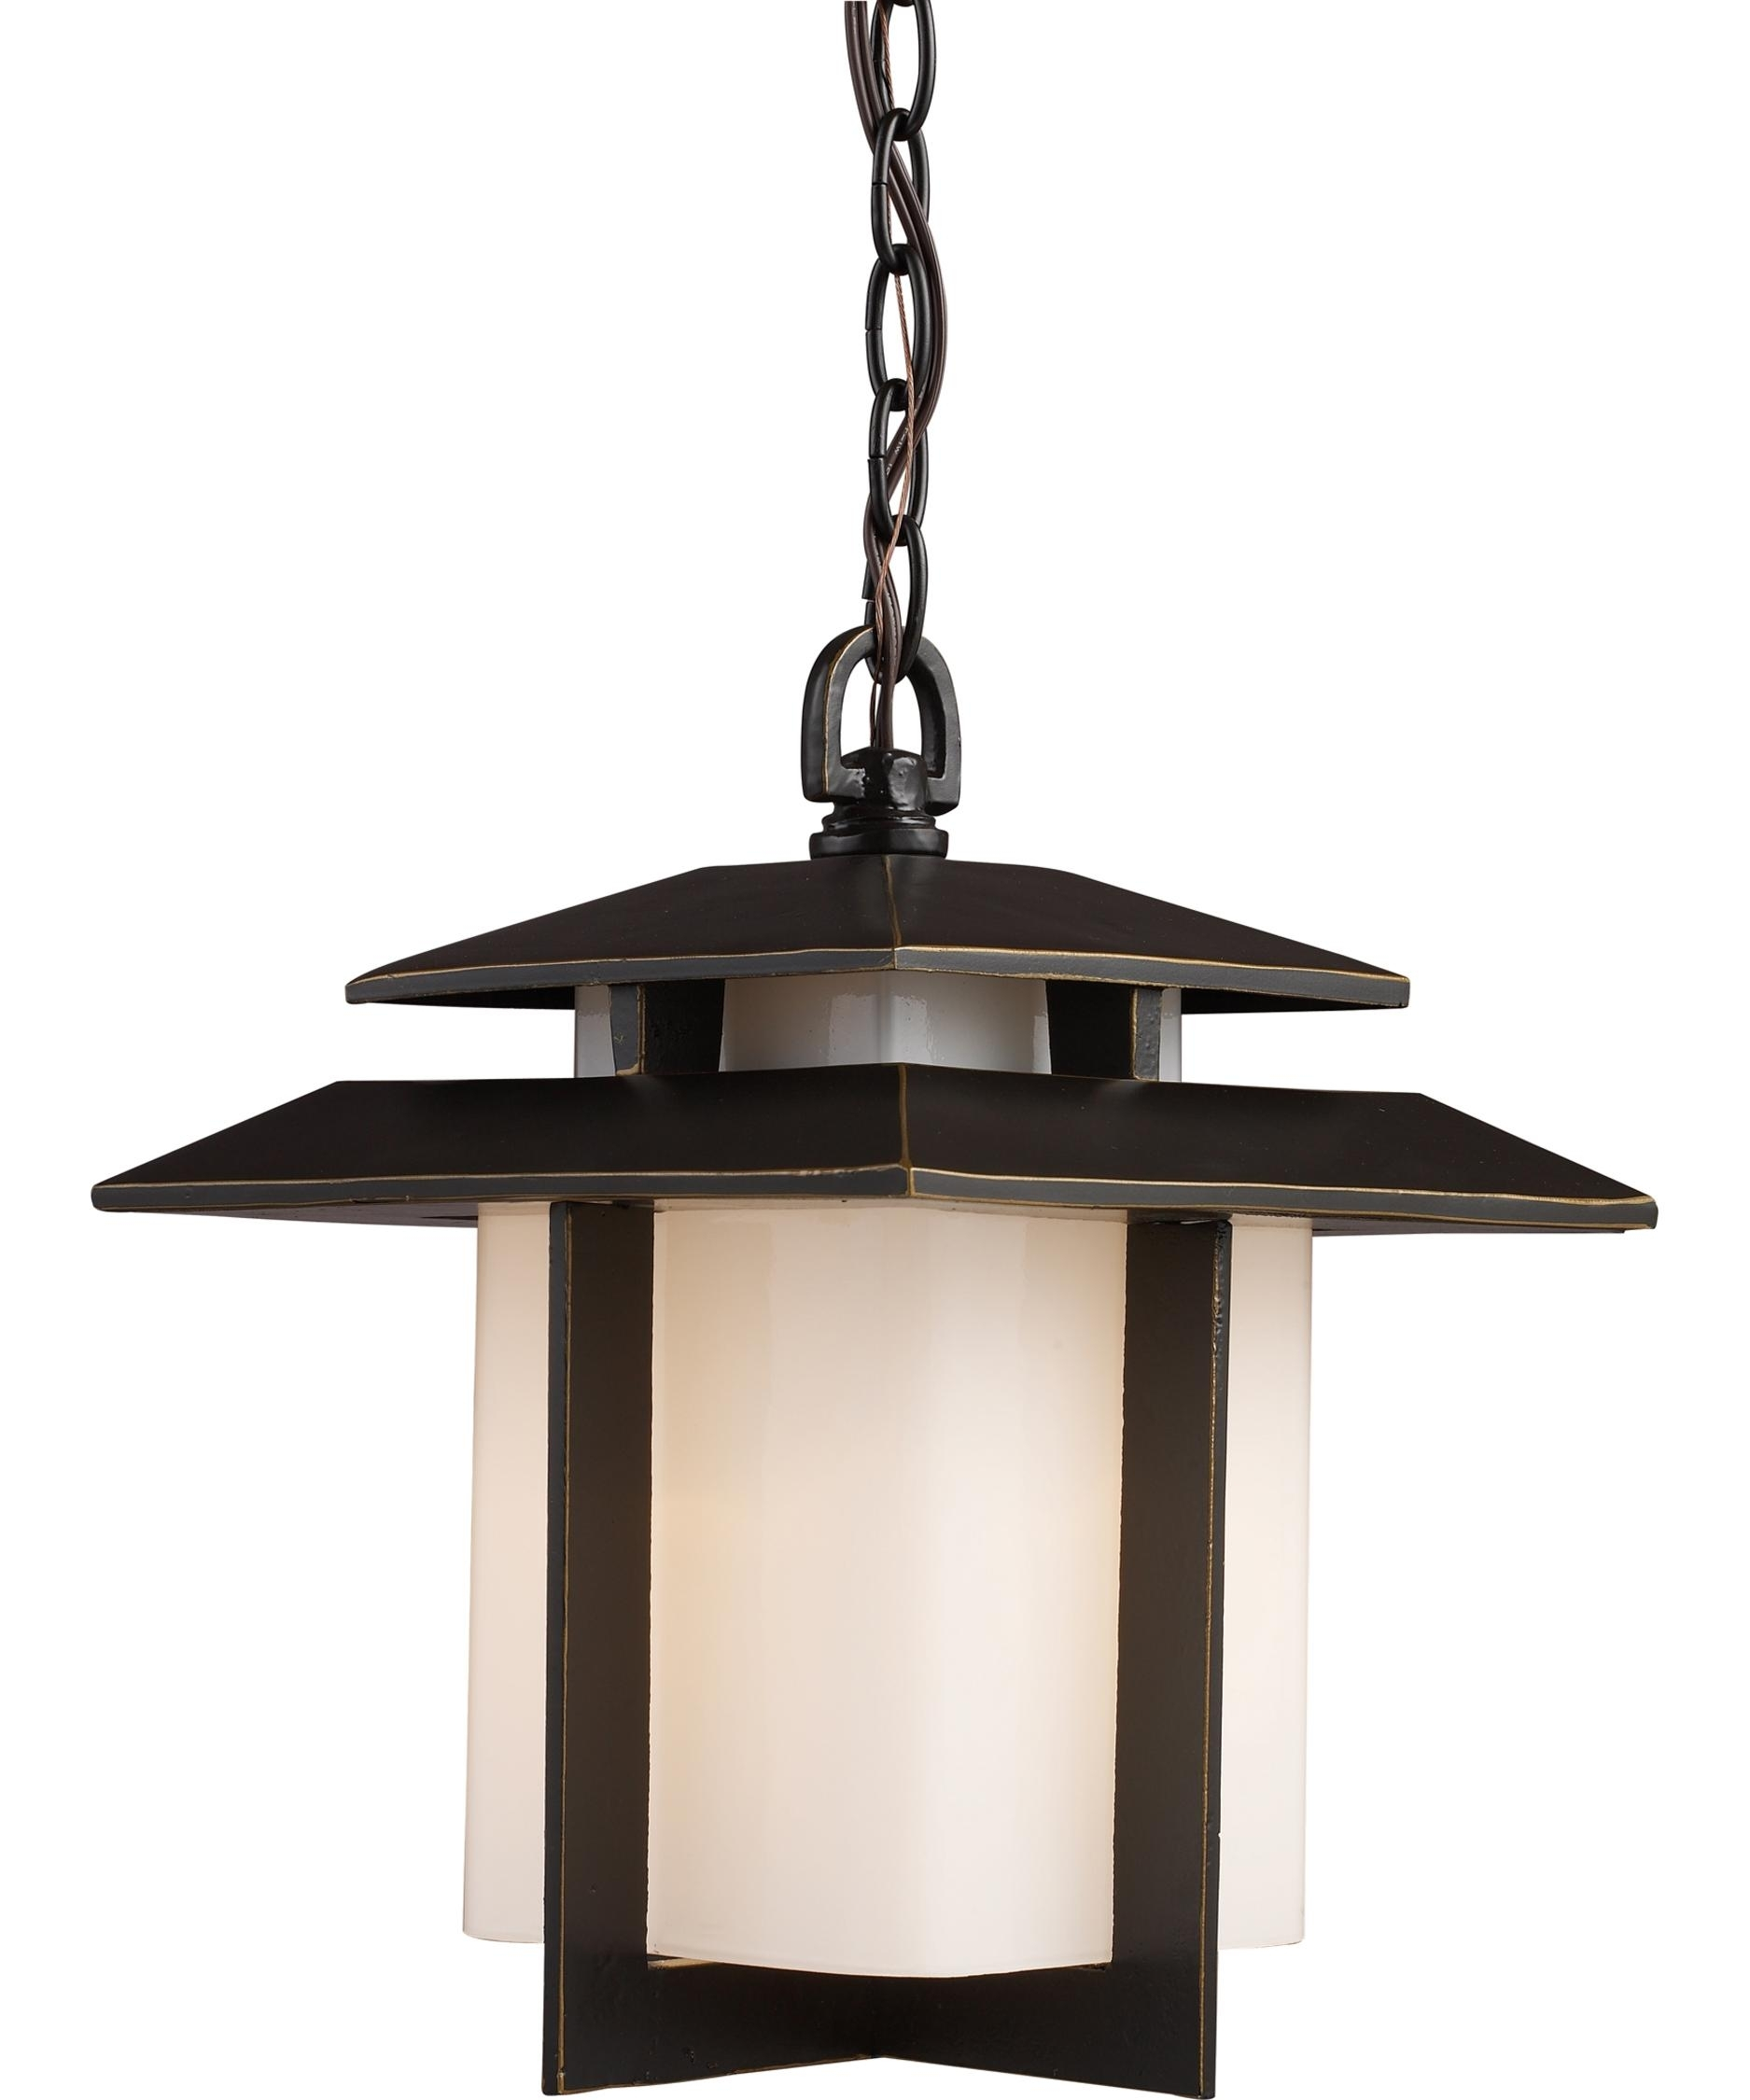 Elk Lighting 42172-1 Kanso 10 Inch Wide 1 Light Outdoor Hanging within Outdoor Japanese Lanterns for Sale (Image 4 of 20)